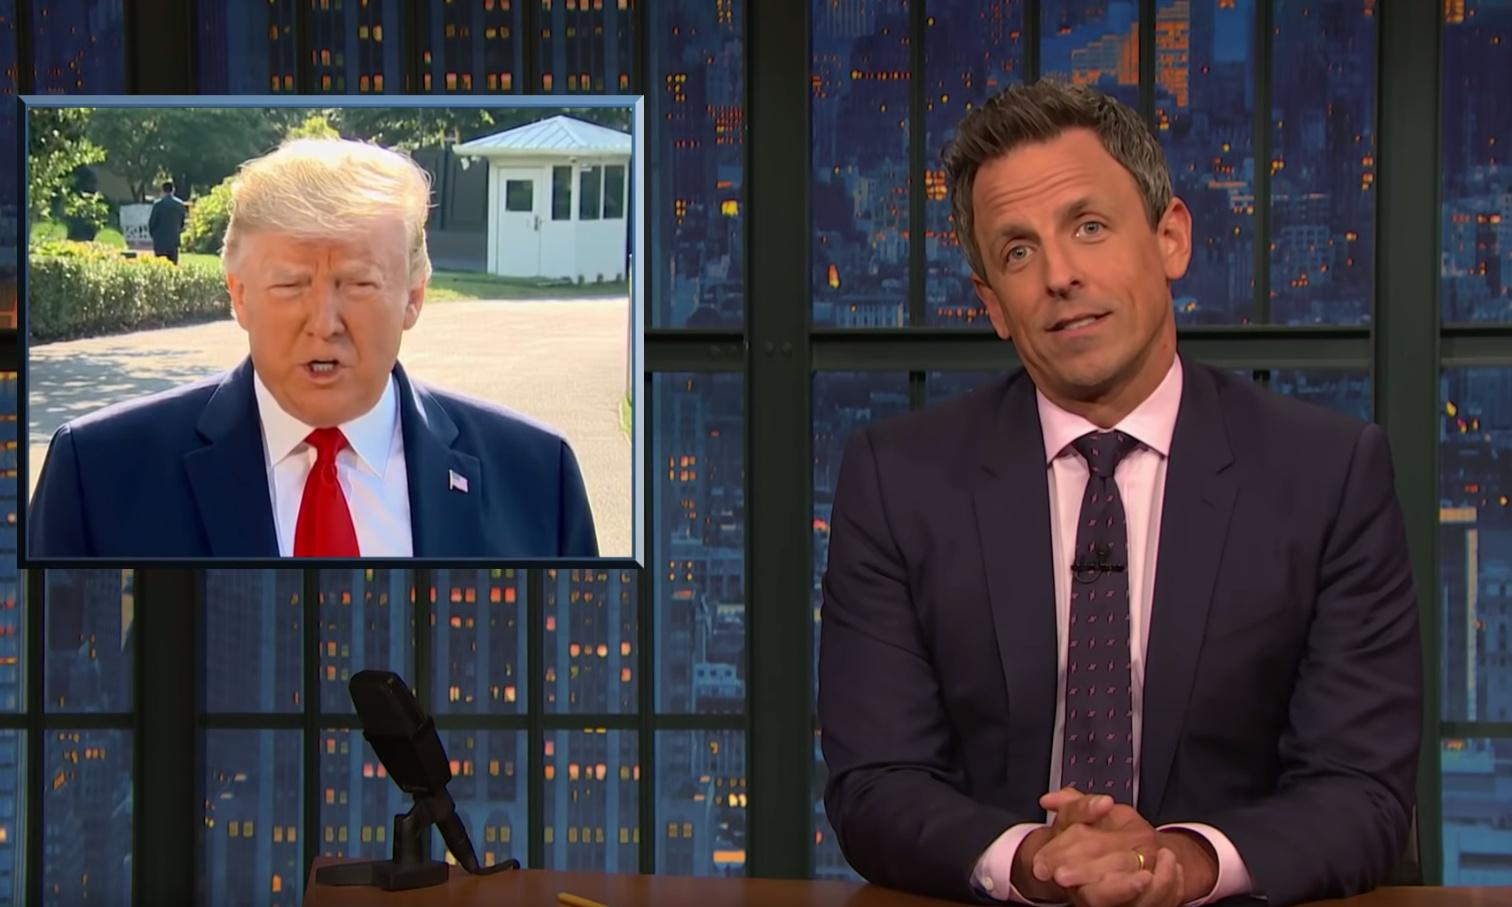 Seth Meyers to Trump: 'What chemical are you missing from your brain?'